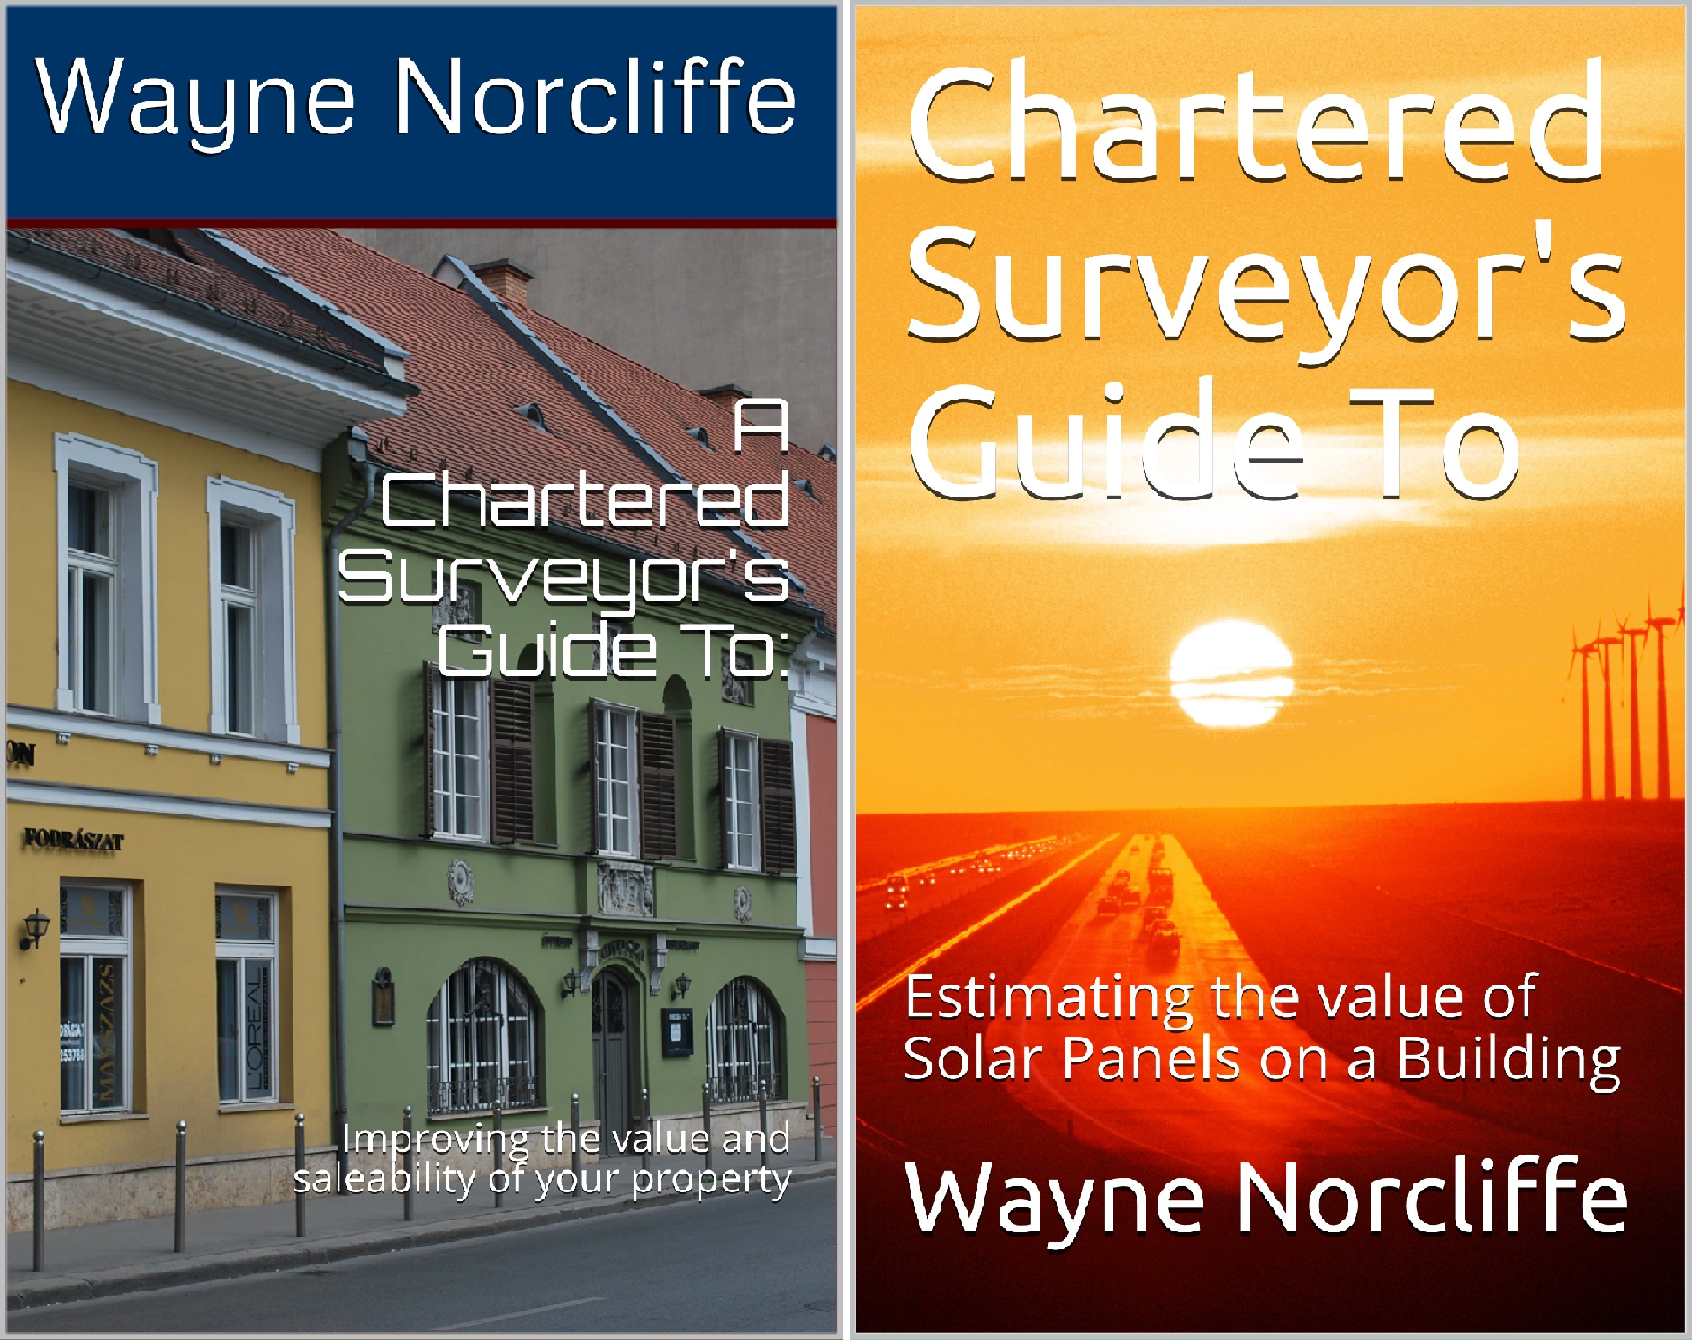 Chartered Surveyors Guide To (2 Book Series)